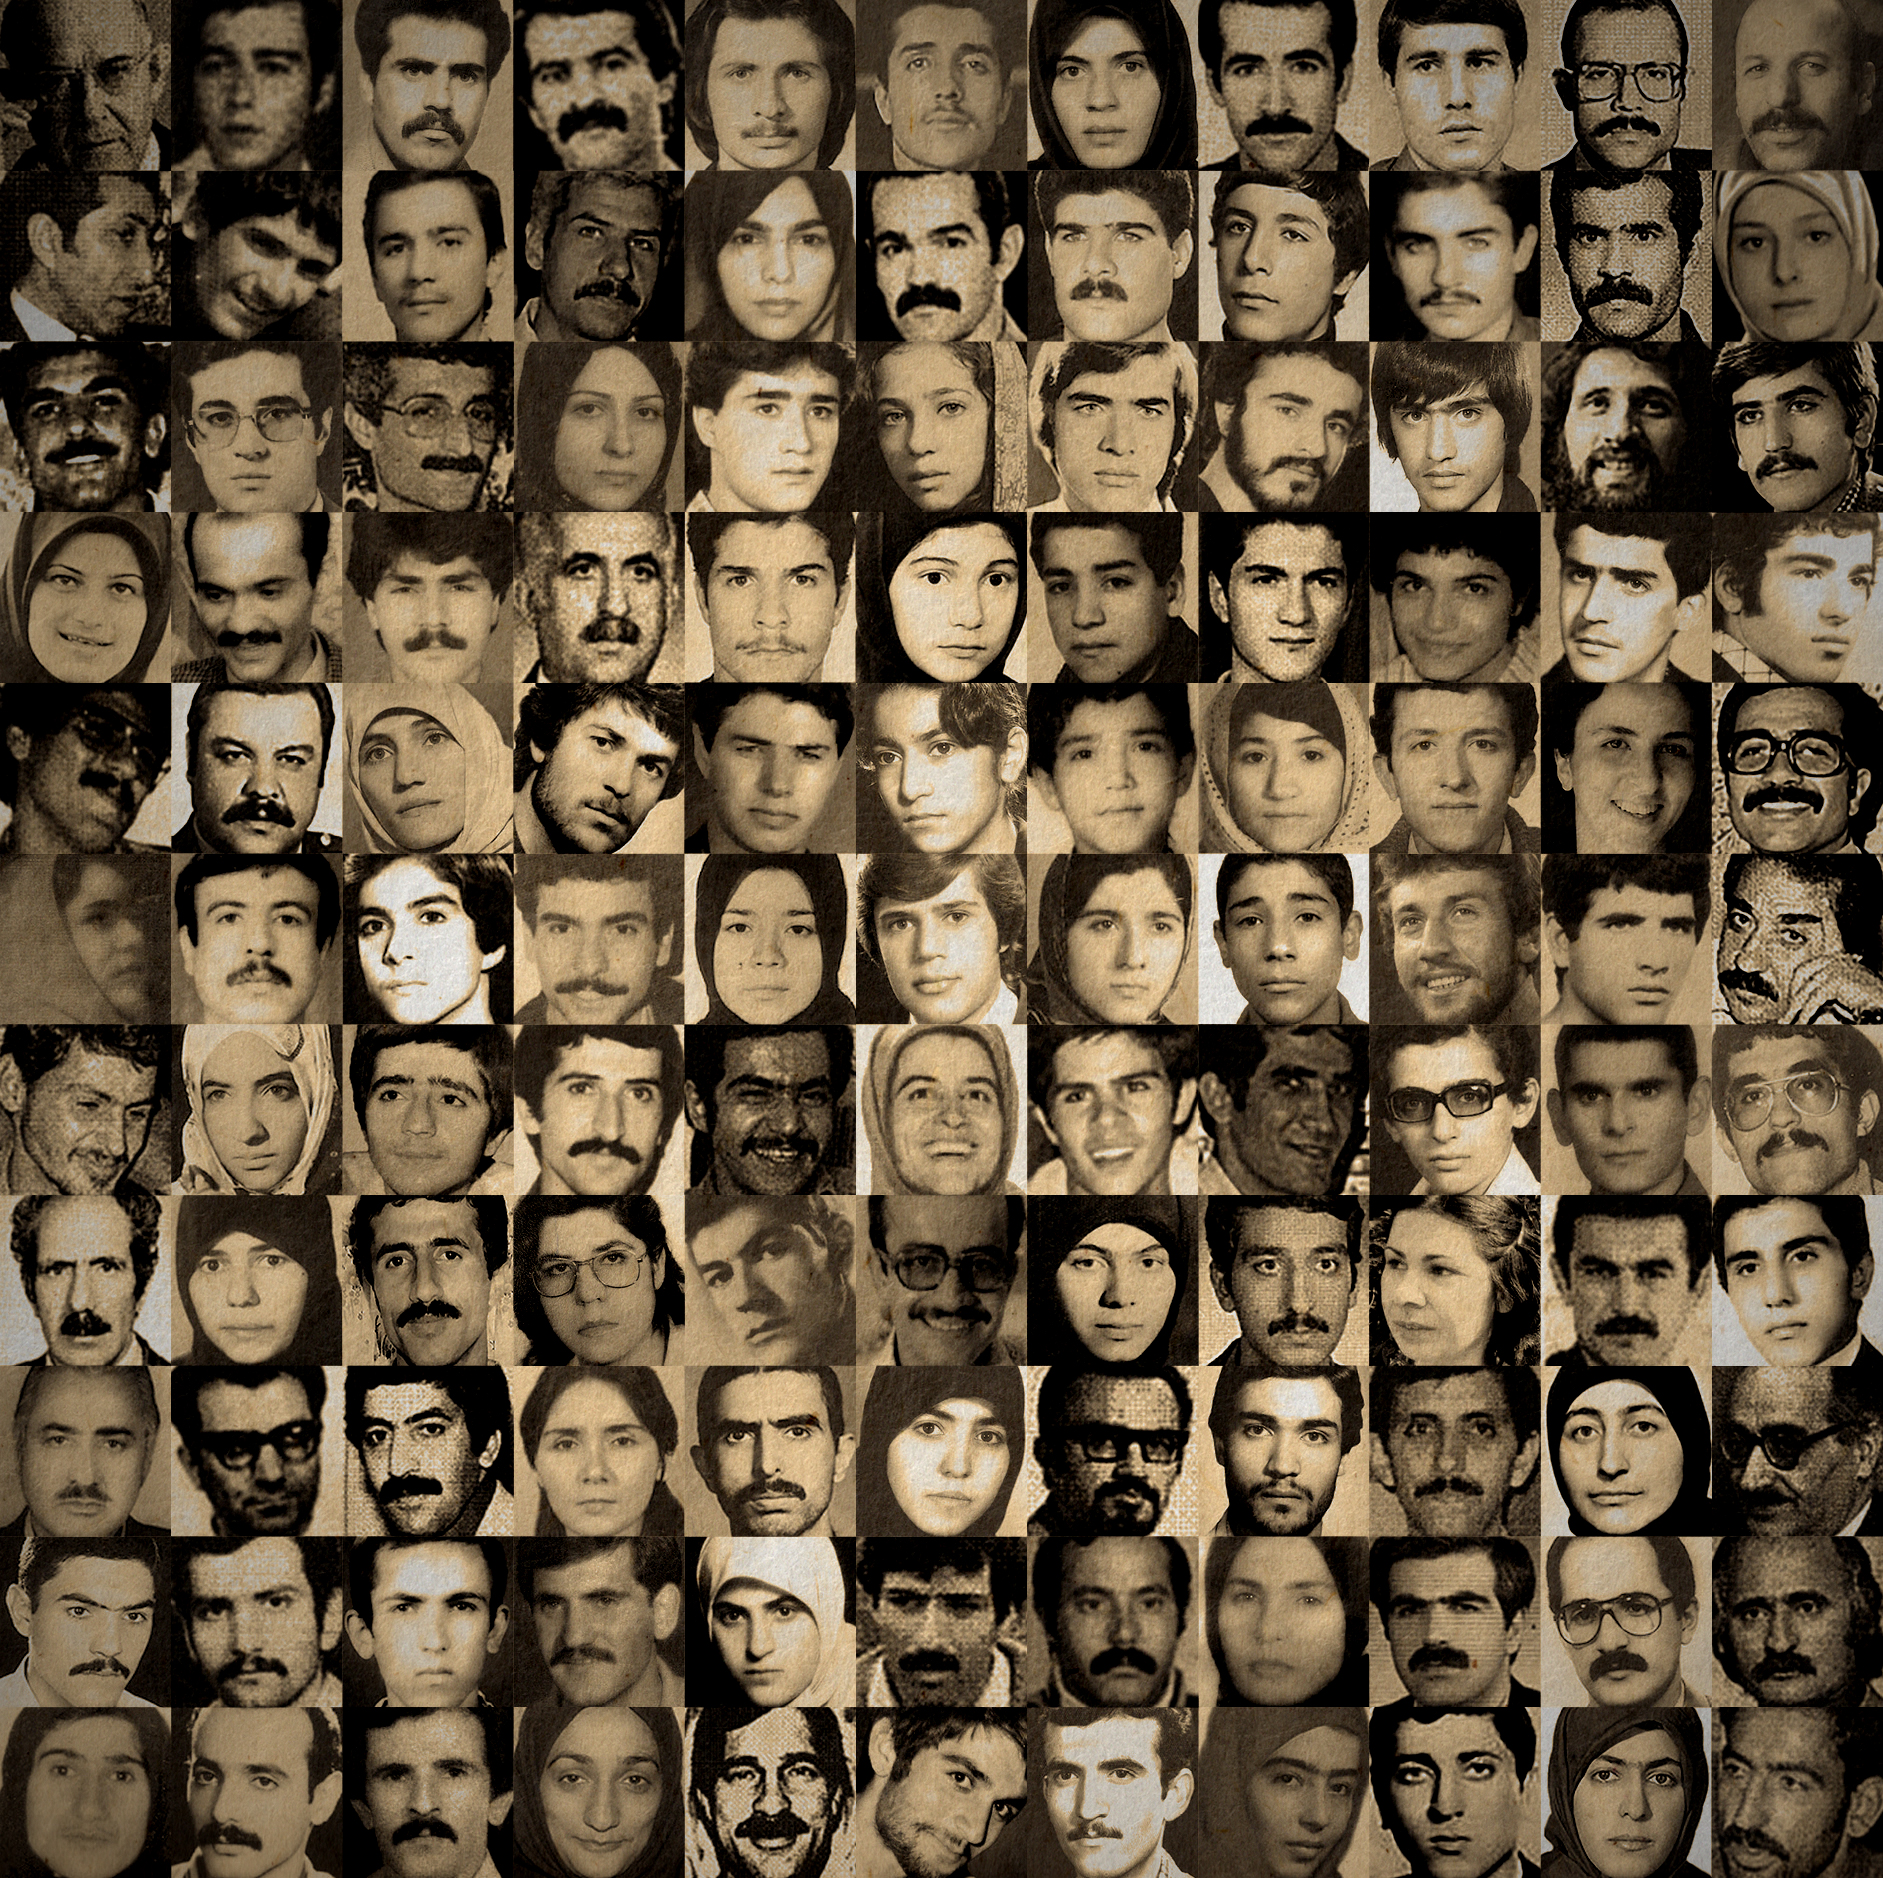 Iran: World turning blind eye to crisis of mass enforced disappearance